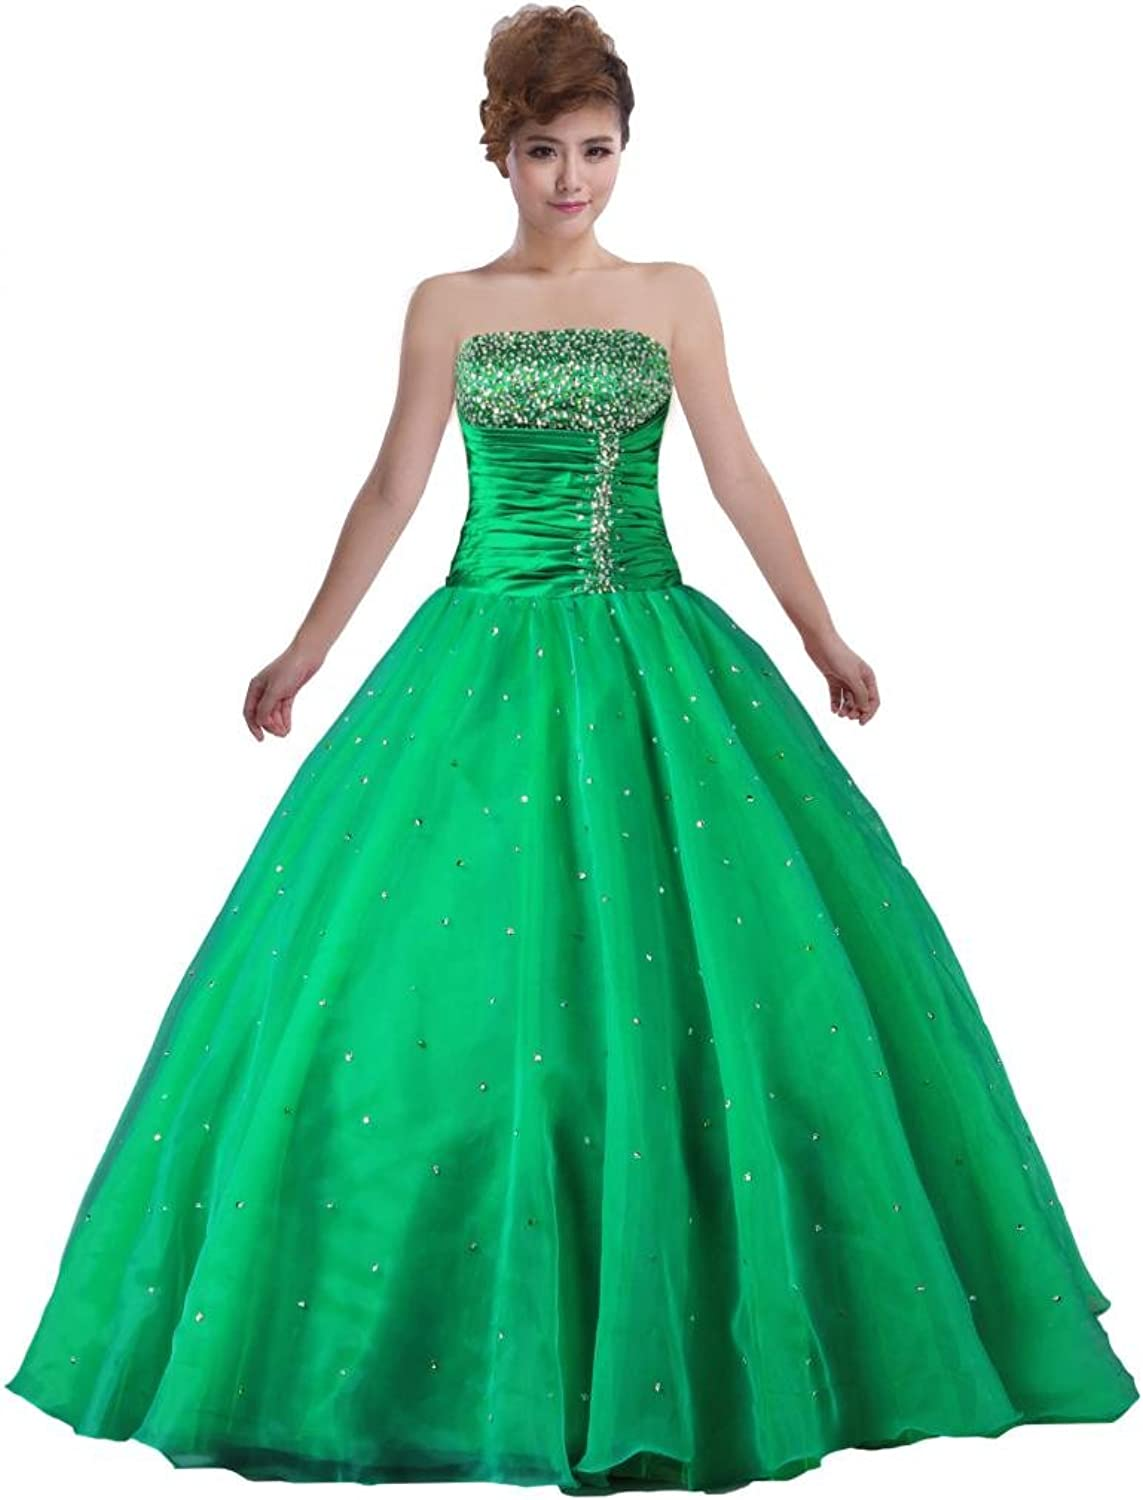 ANTS Strapless Ball Gown Bead Organza Quinceanera Prom Dress